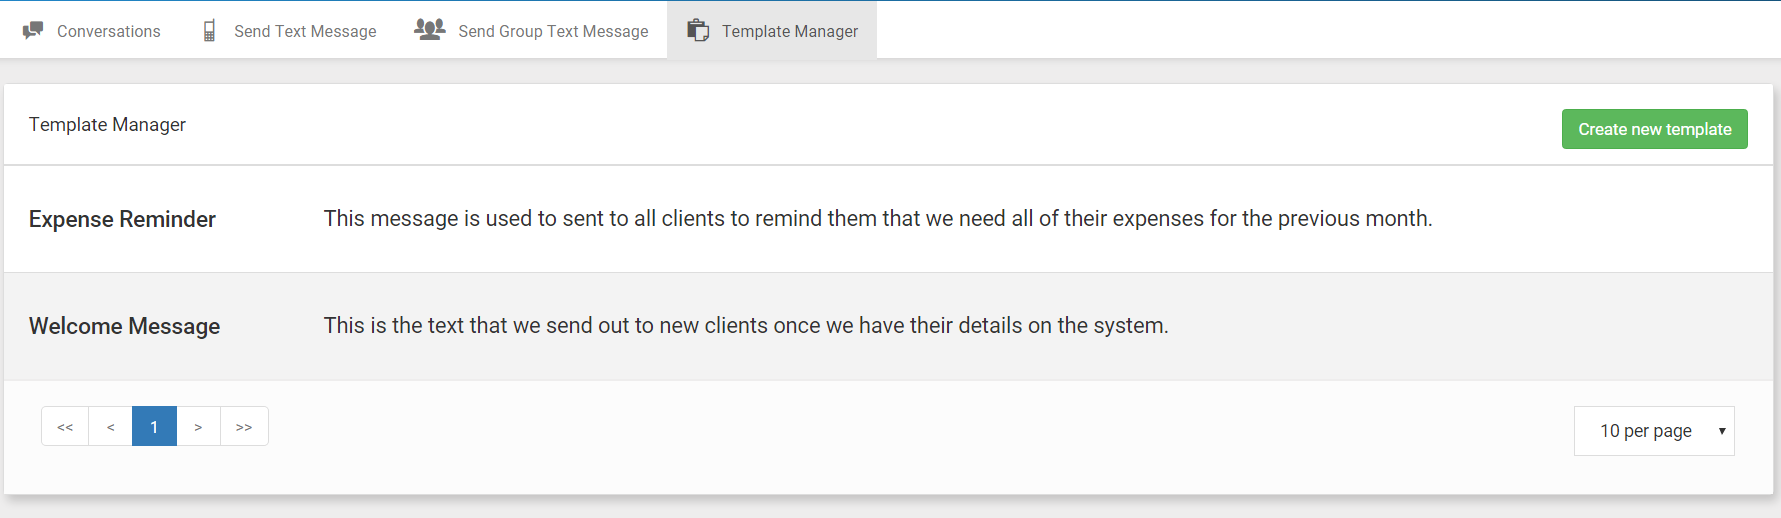 Template_Manager_-_Template_in_List.png